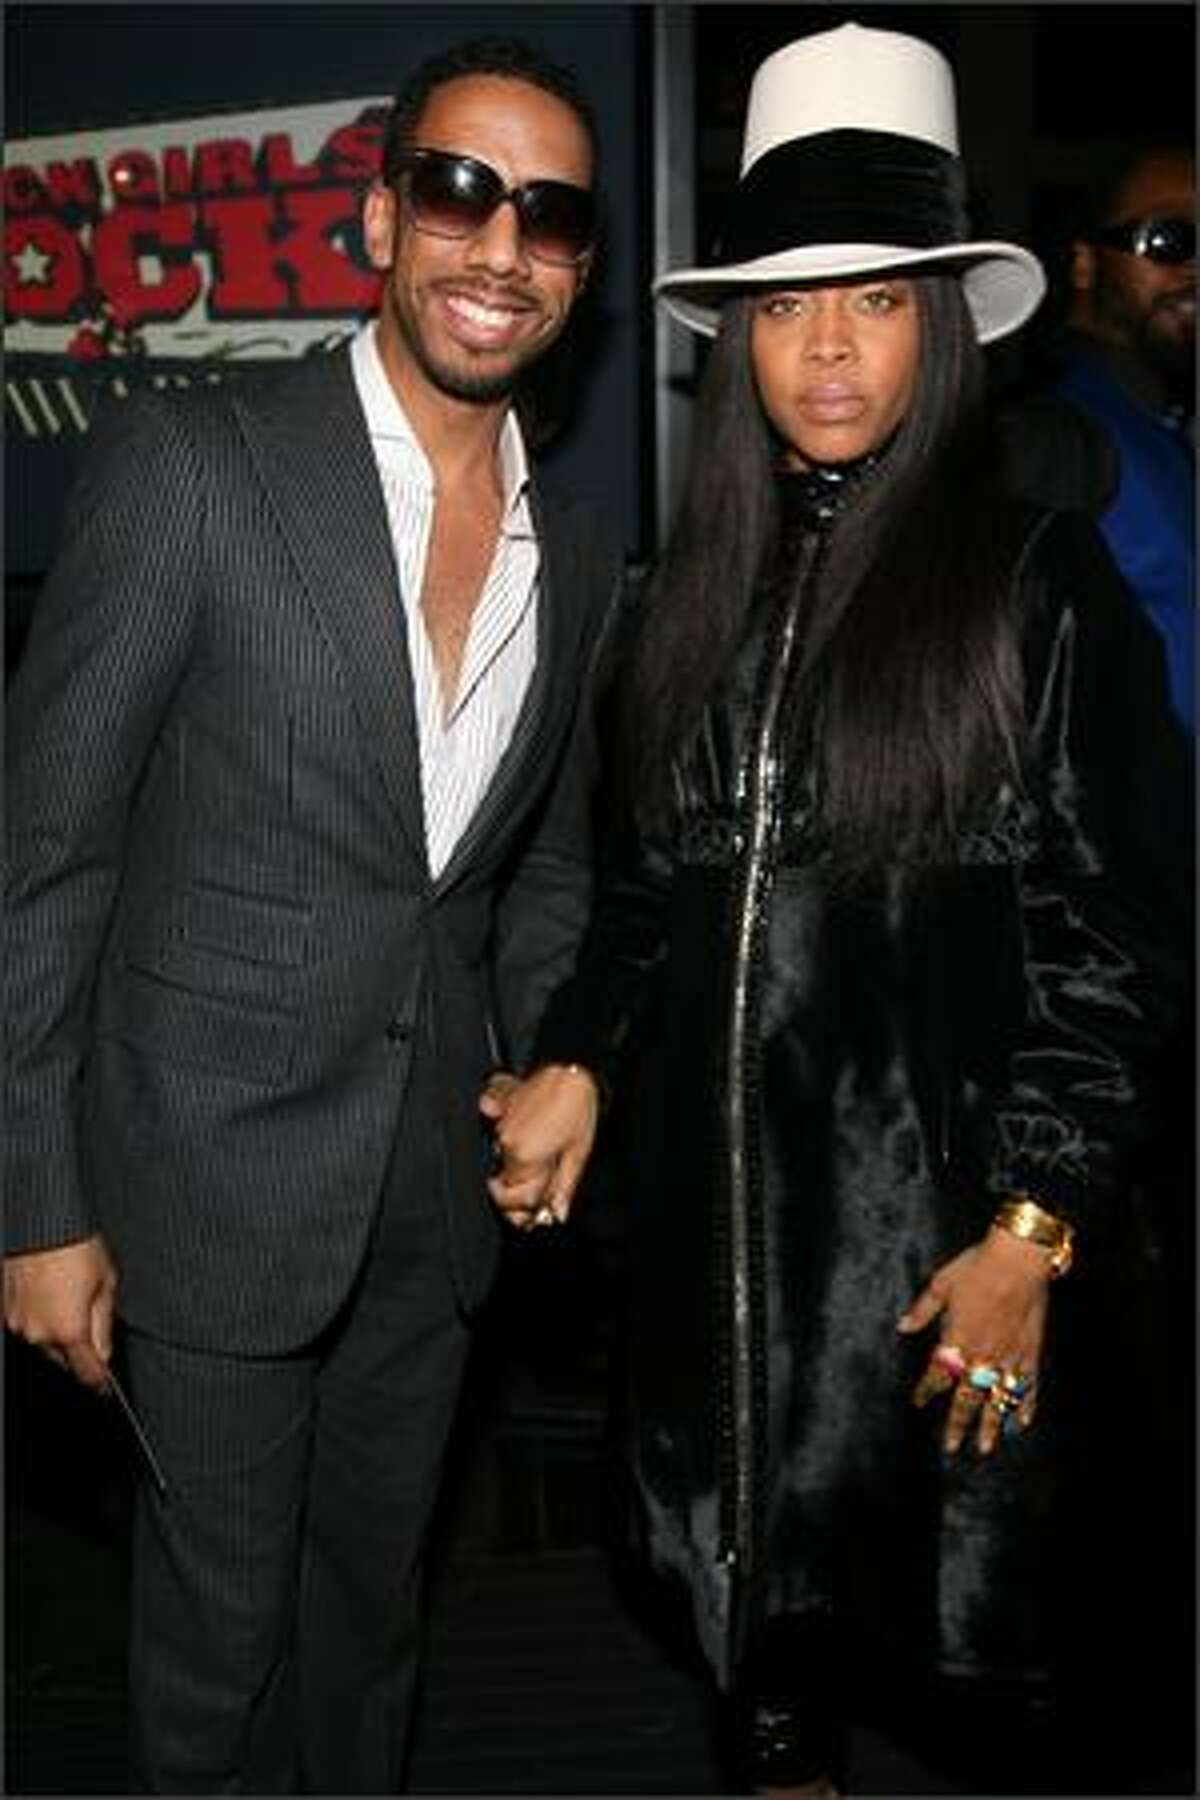 Singers Ryan Leslie and Erykah Badu attends the 3rd Annual Black Girls Rock! Awards at Jazz at Lincoln Center on Sunday in New York City.